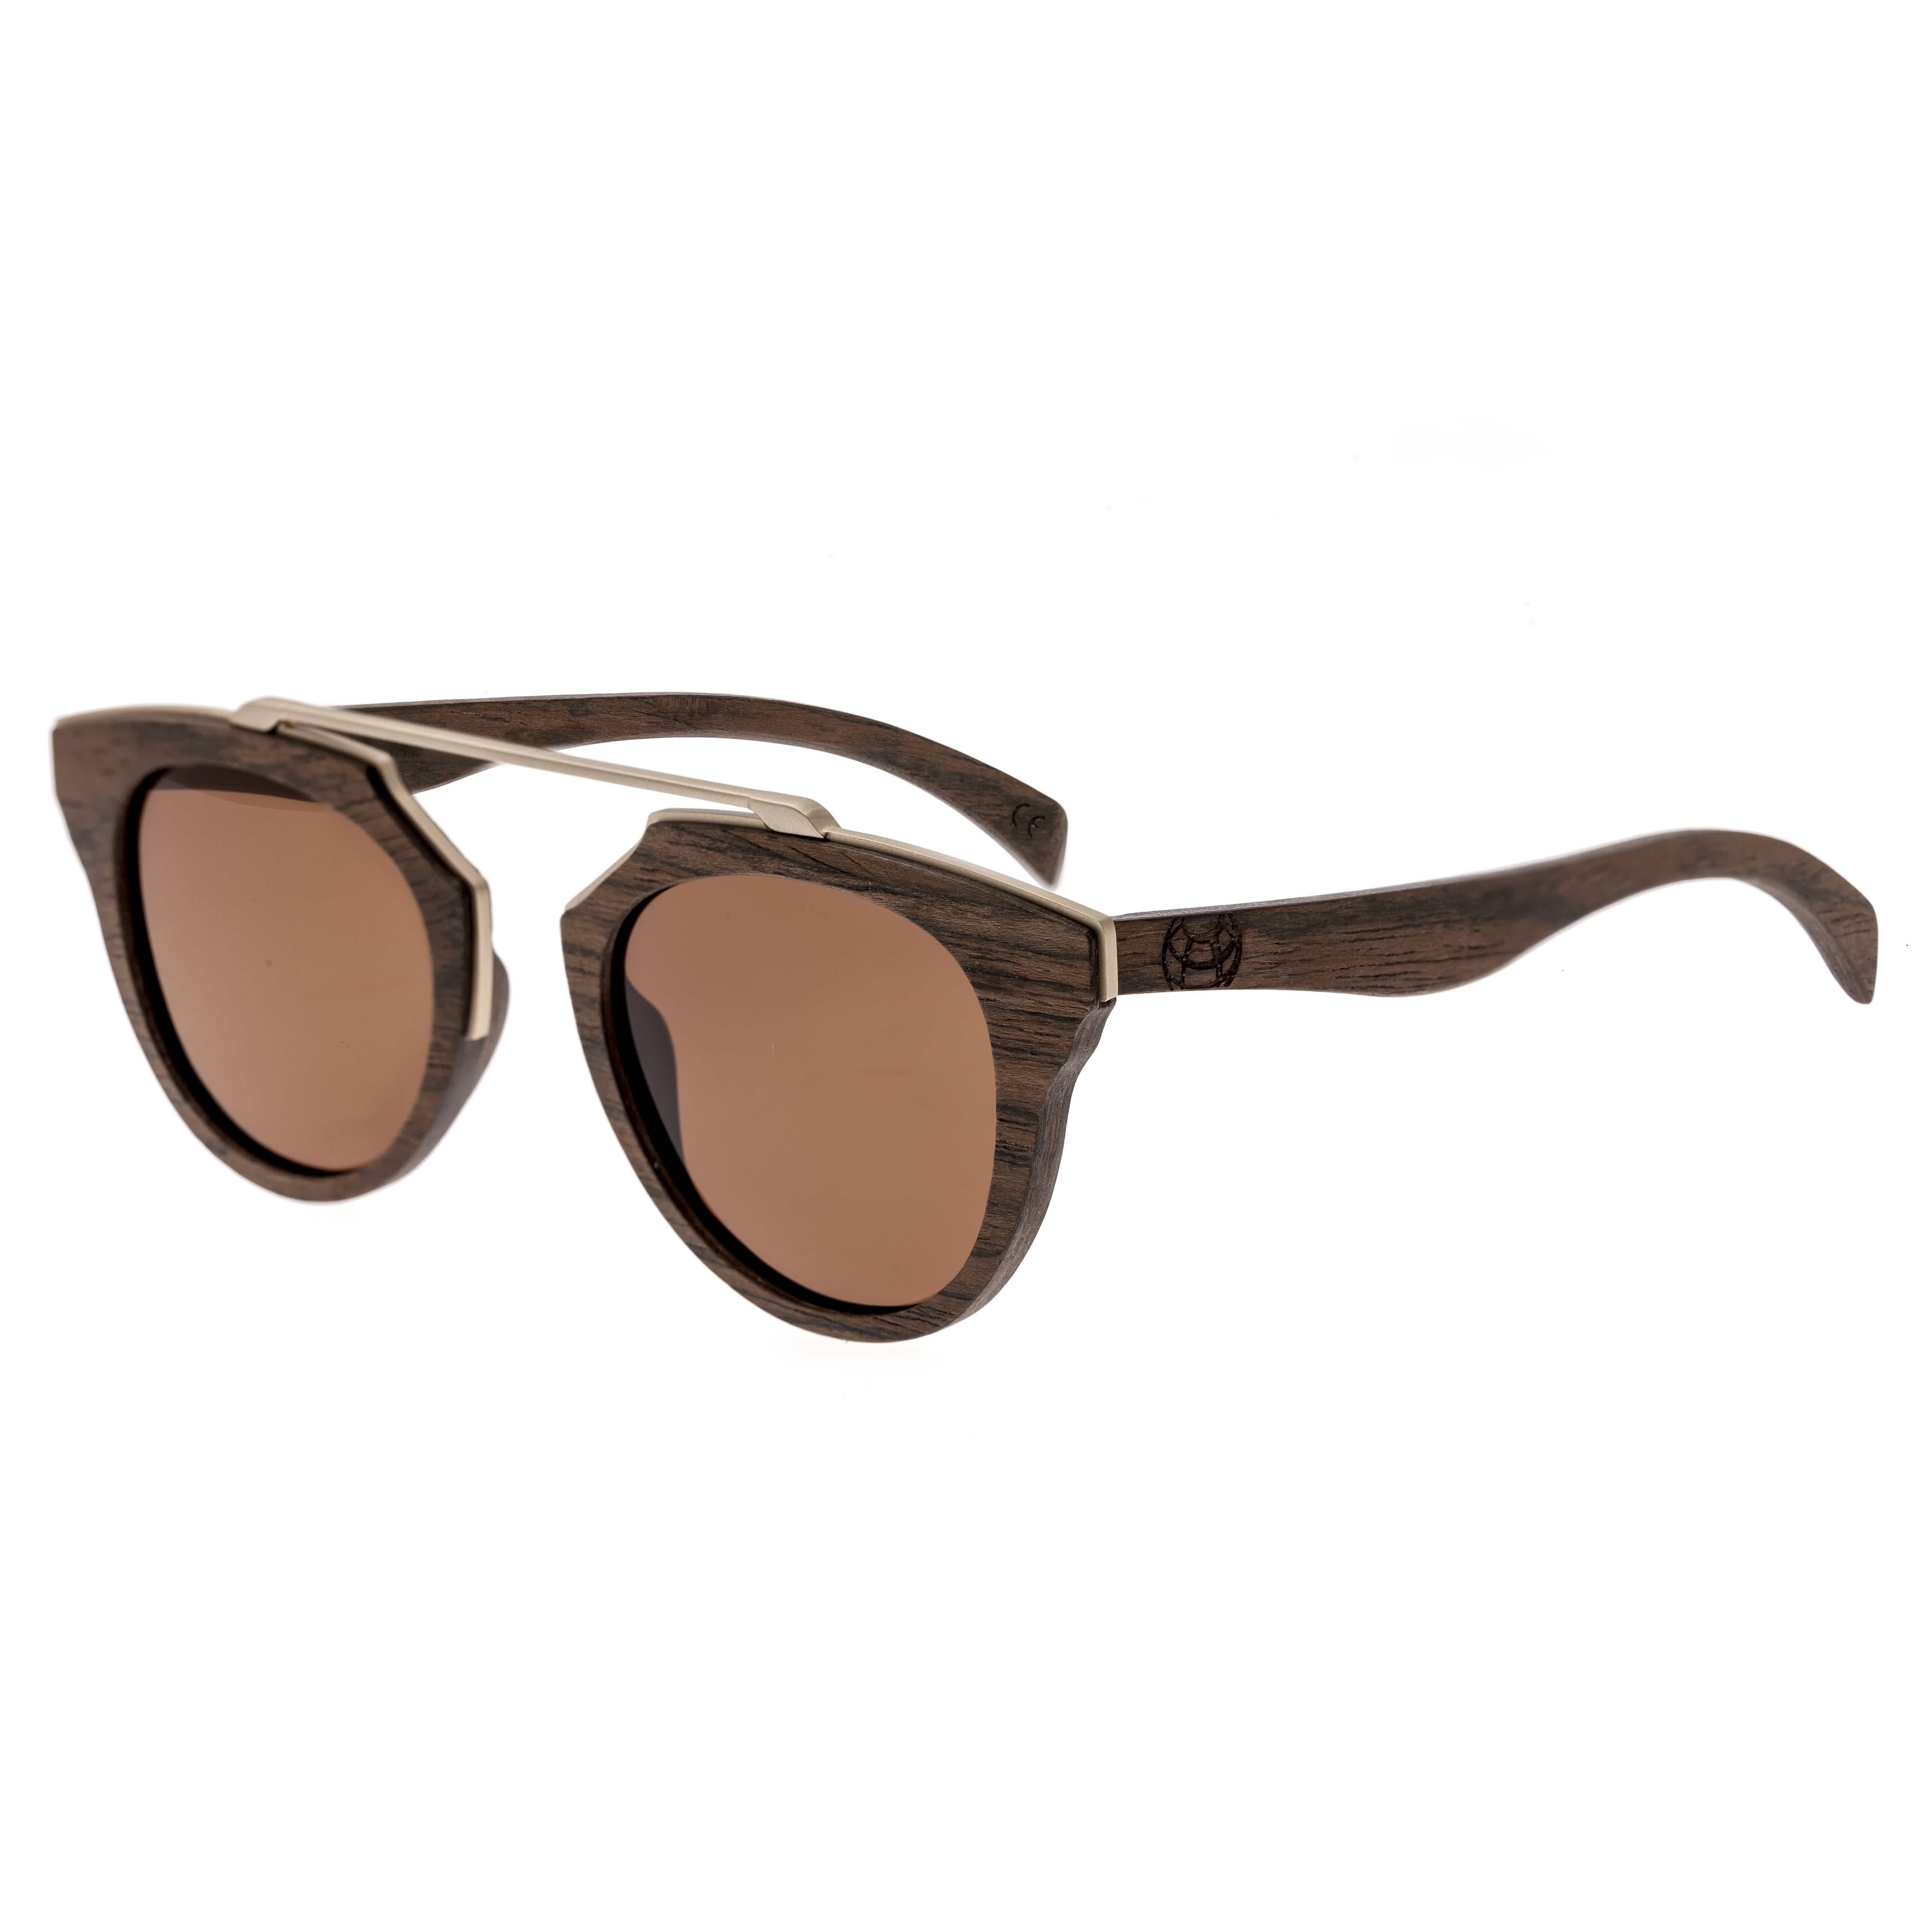 Earth Ceira Wood Sunglasses In Brown